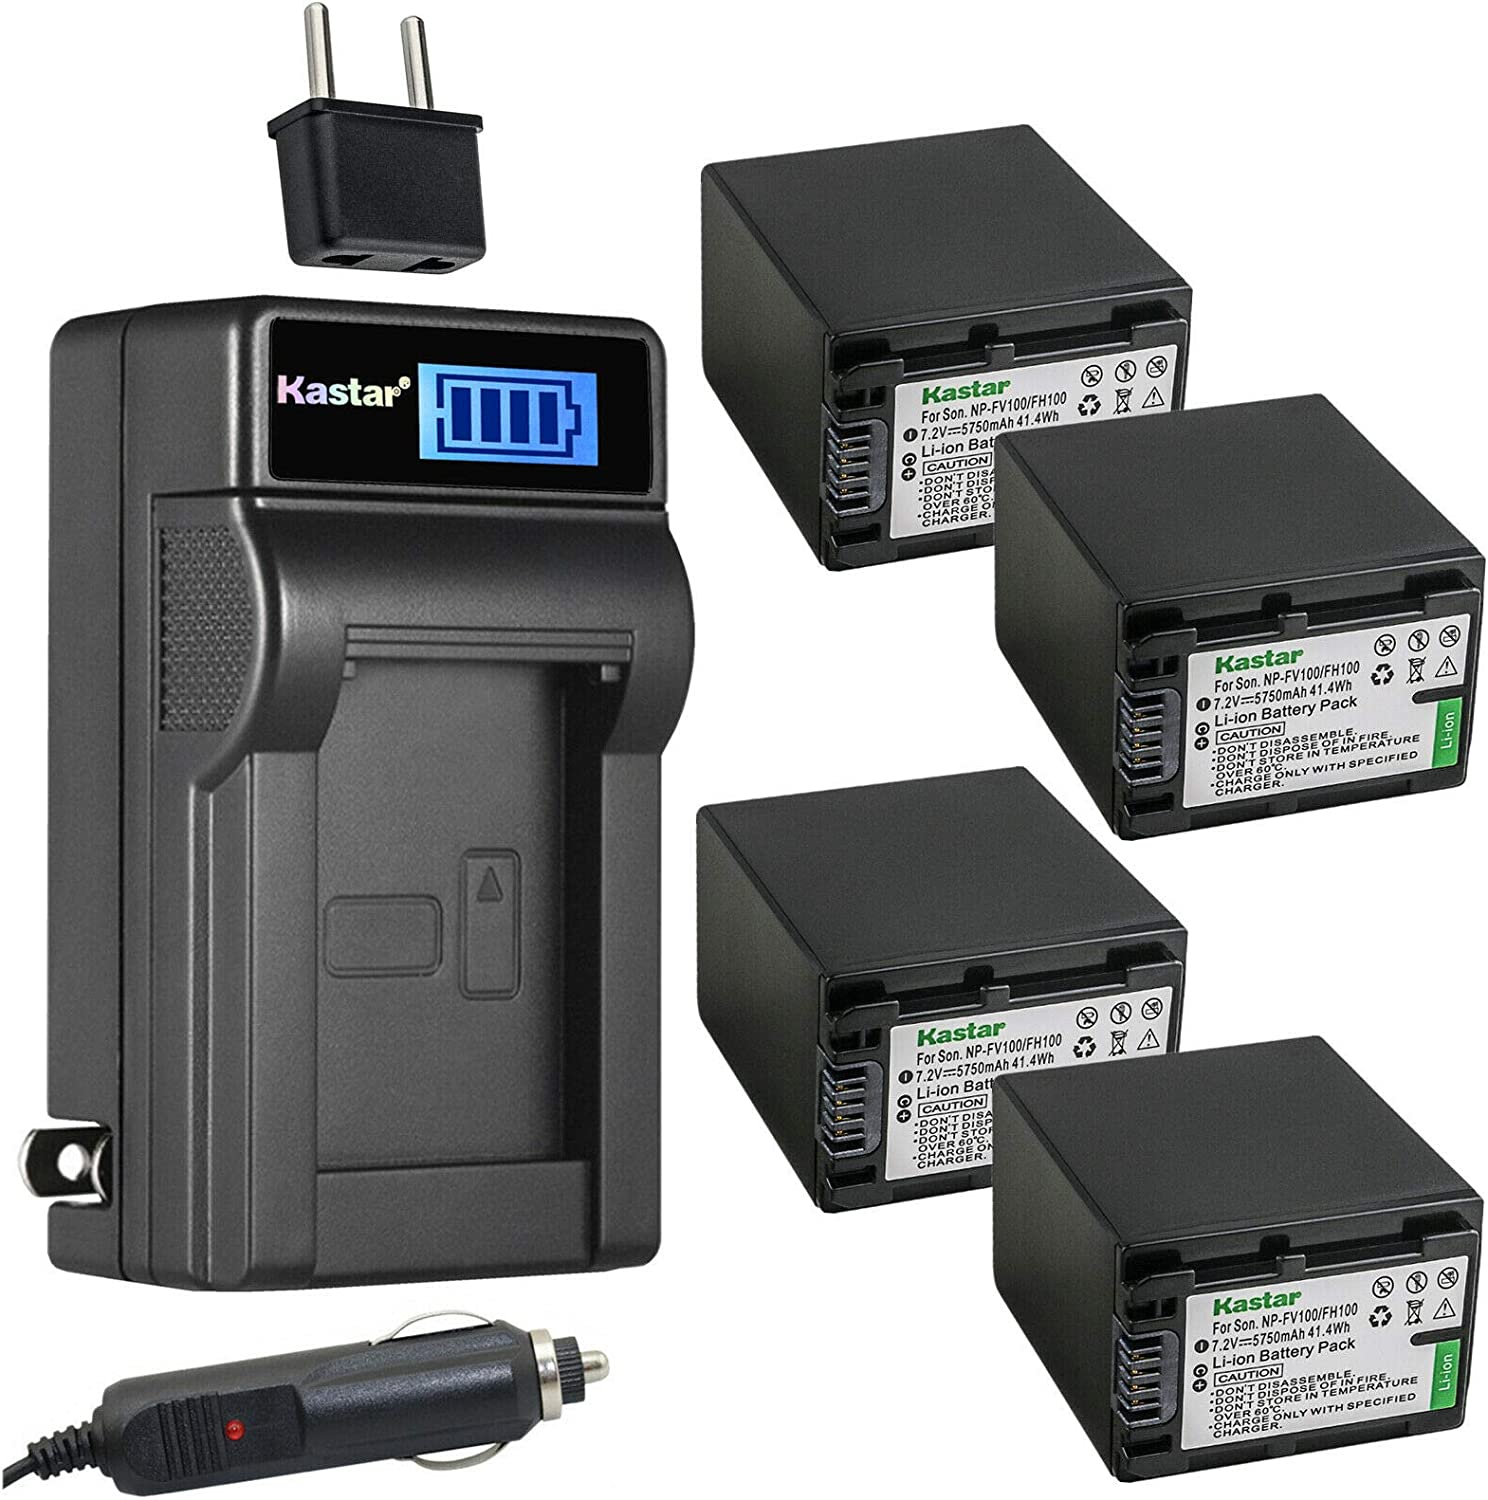 Kastar 4-Pack NP-FH100 Free Under blast sales Shipping New Battery and wit Charger AC LCD Compatible